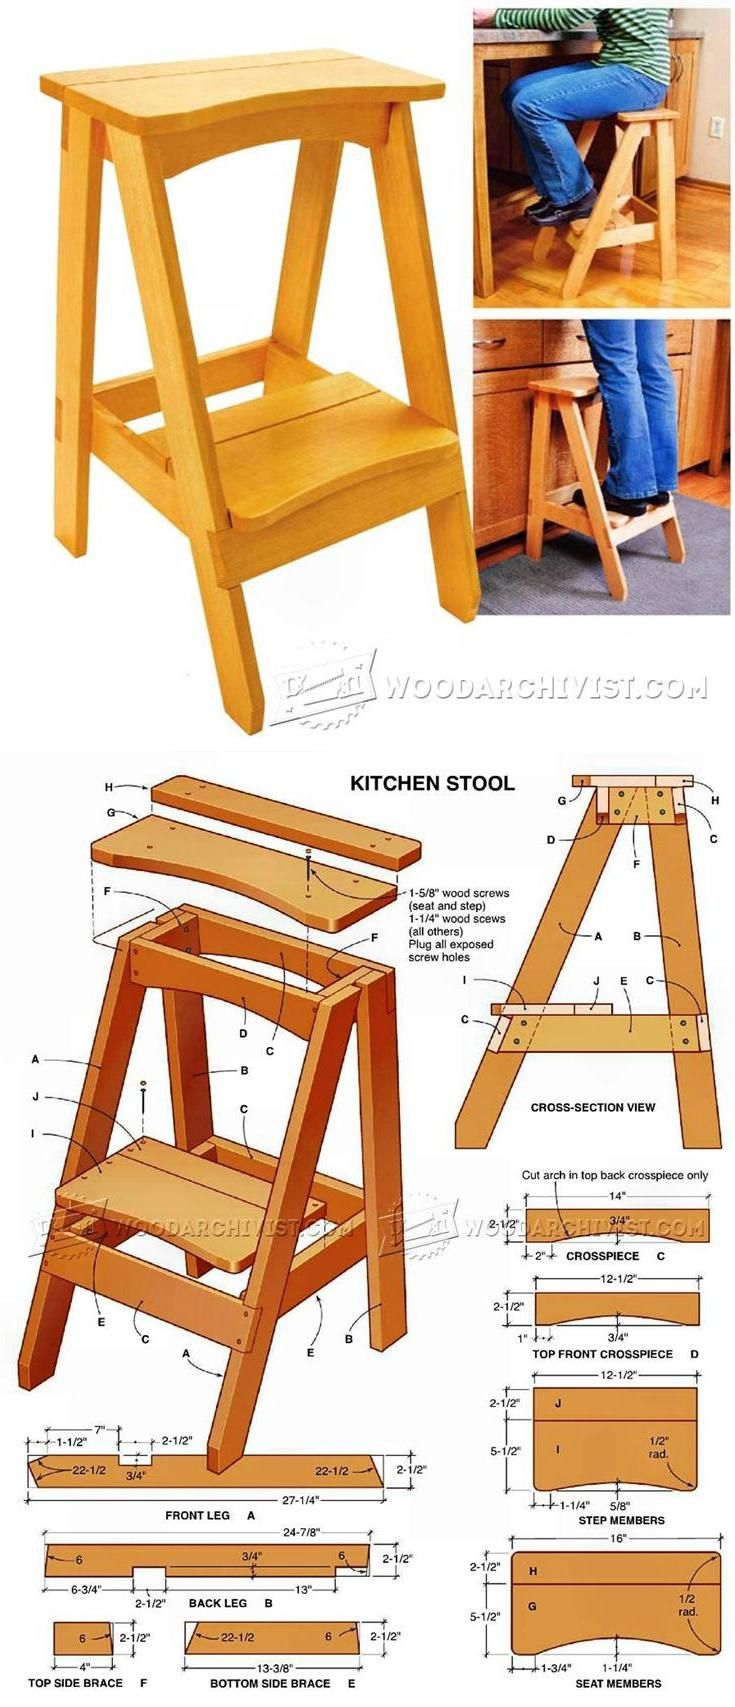 Kitchen Step Stool Plans Furniture Plans And Projects